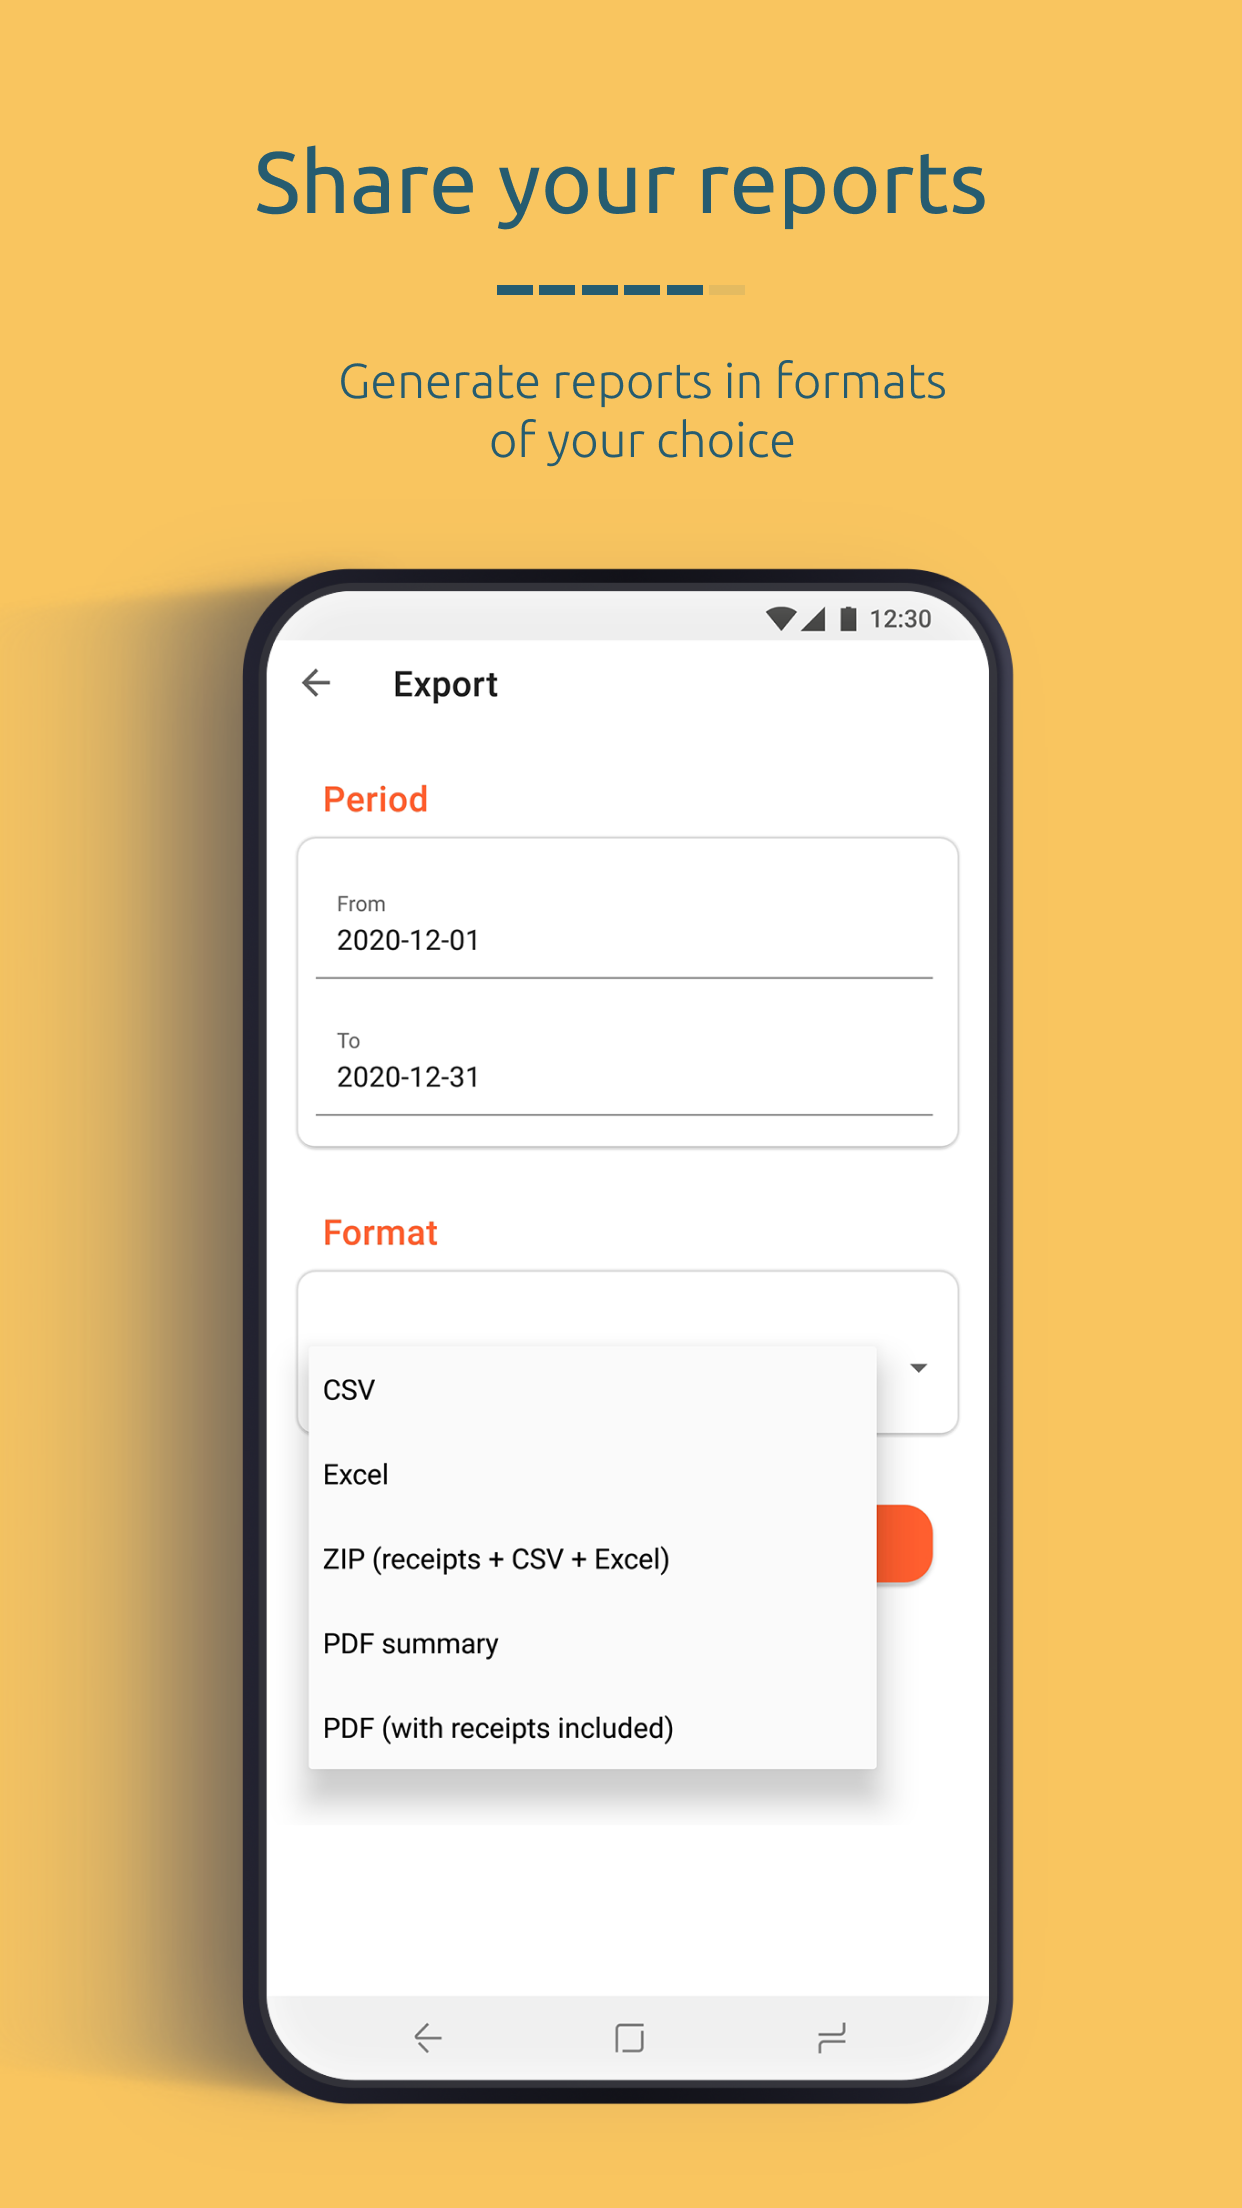 Share your reports from the app in one click